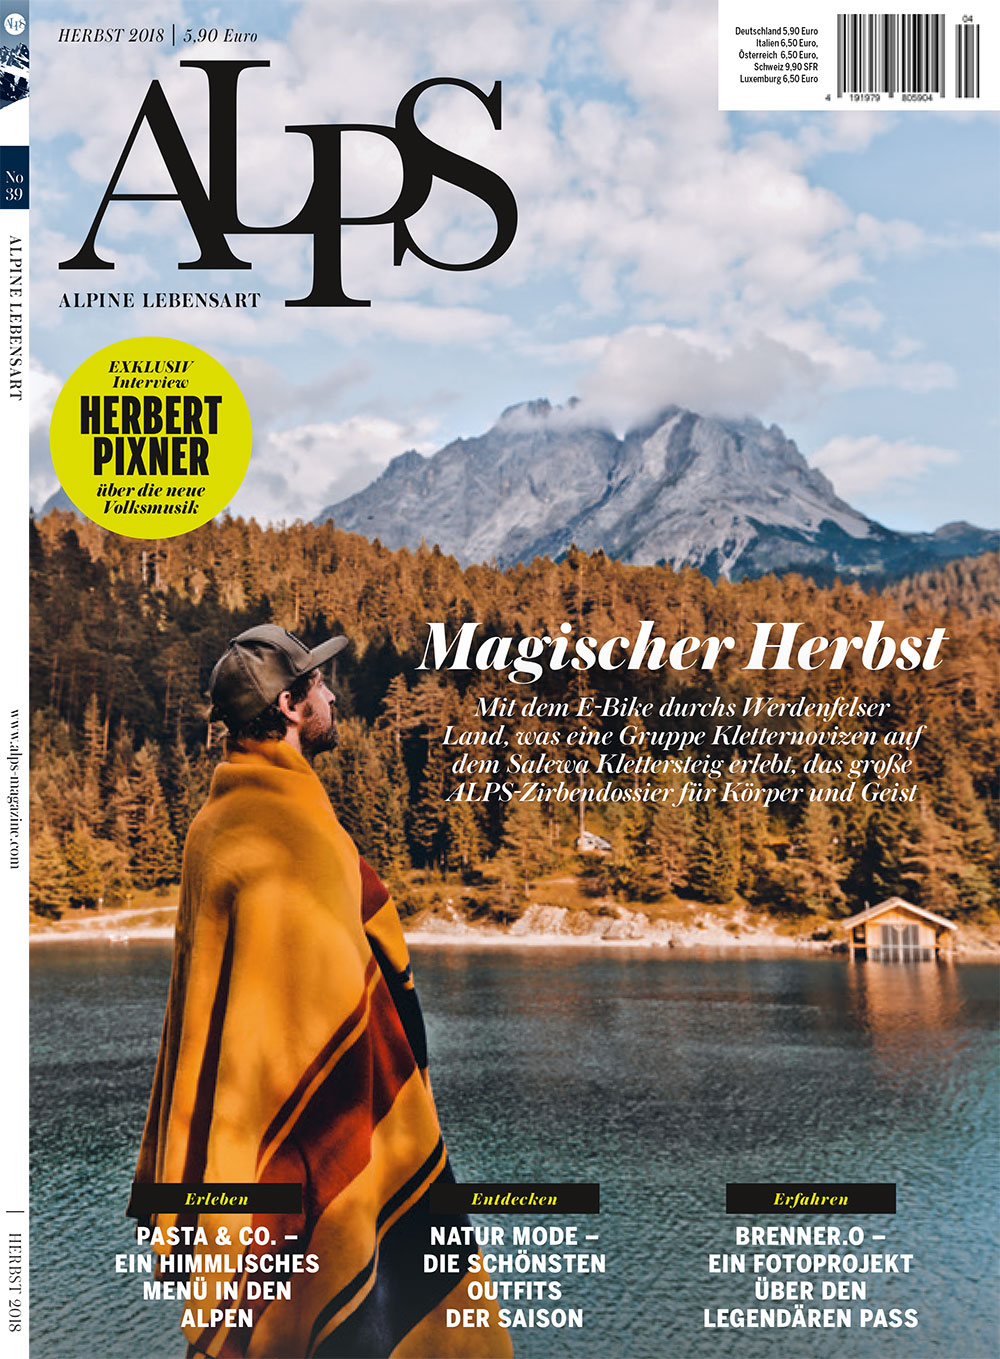 ALPS Cover 39 Herbst